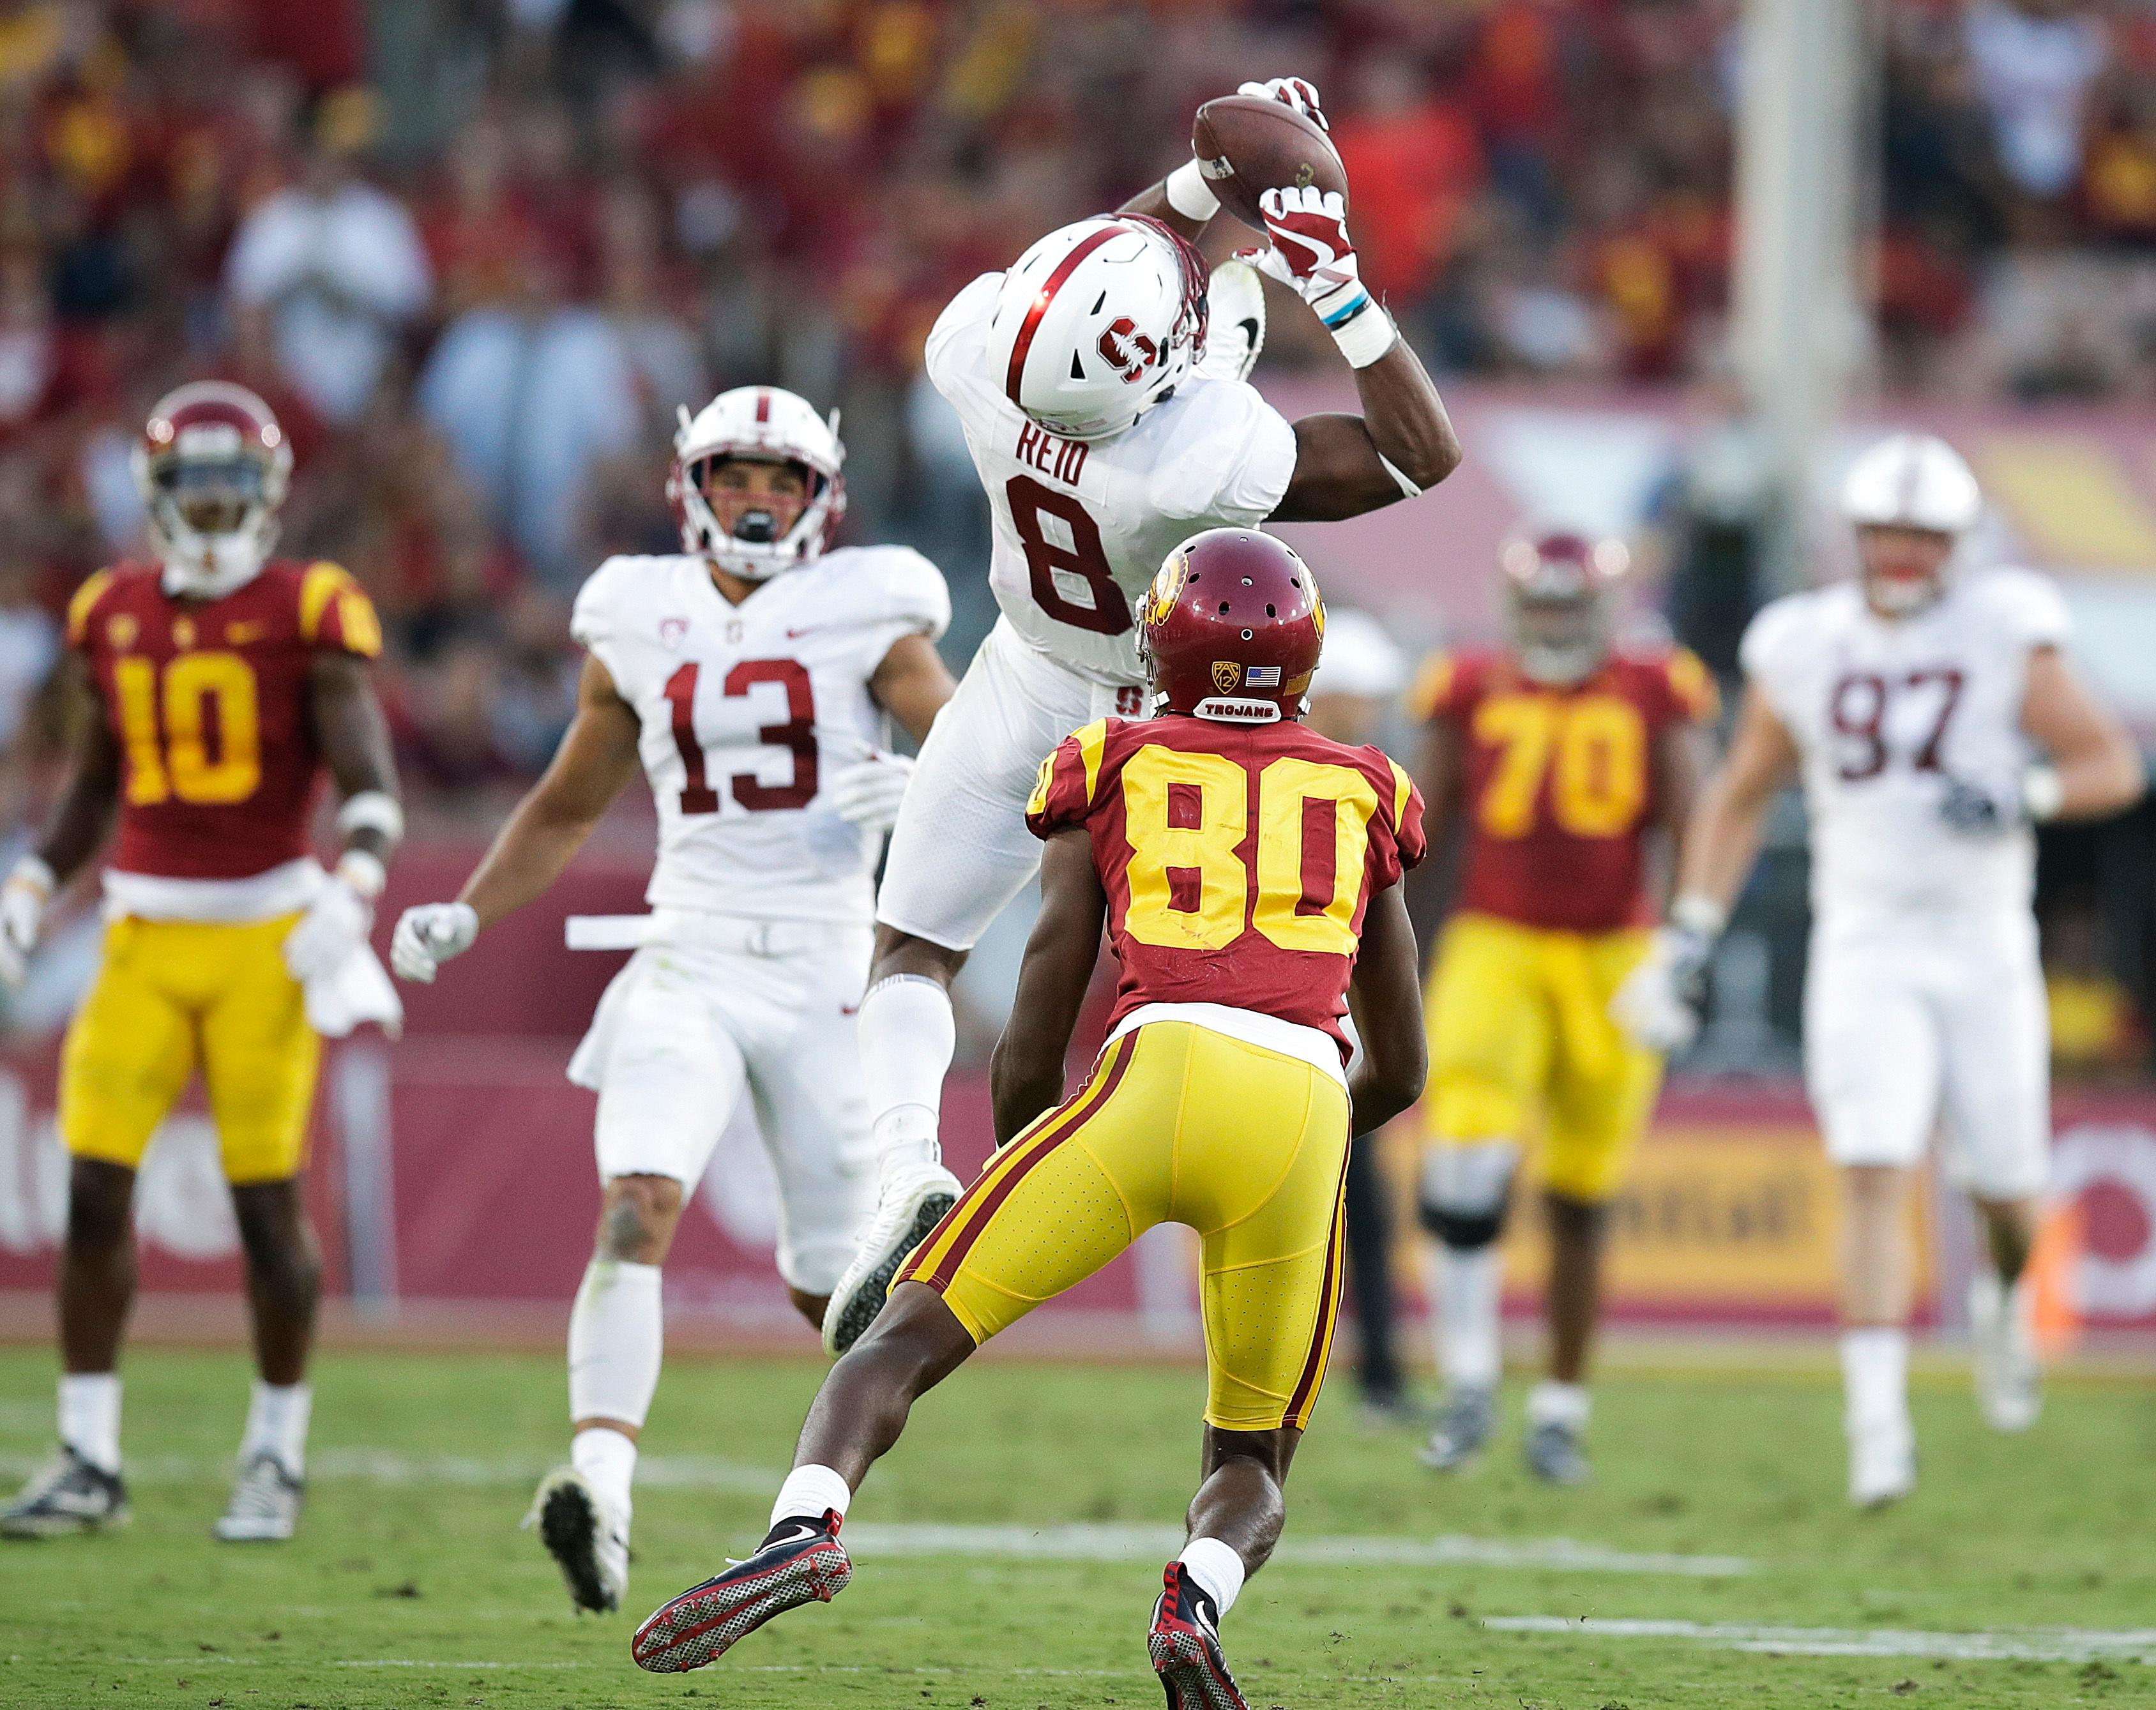 FILE - In this Sept. 9, 2017, file photo, Stanford safety Justin Reid, top, intercepts a pass against Southern California wide receiver Deontay Burnett during the first half of an NCAA college football game, in Los Angeles. Reid was selected to the AP All-Conference Pac-12 team announced Thursday, Dec. 7, 2017. (AP Photo/Jae C. Hong, File)